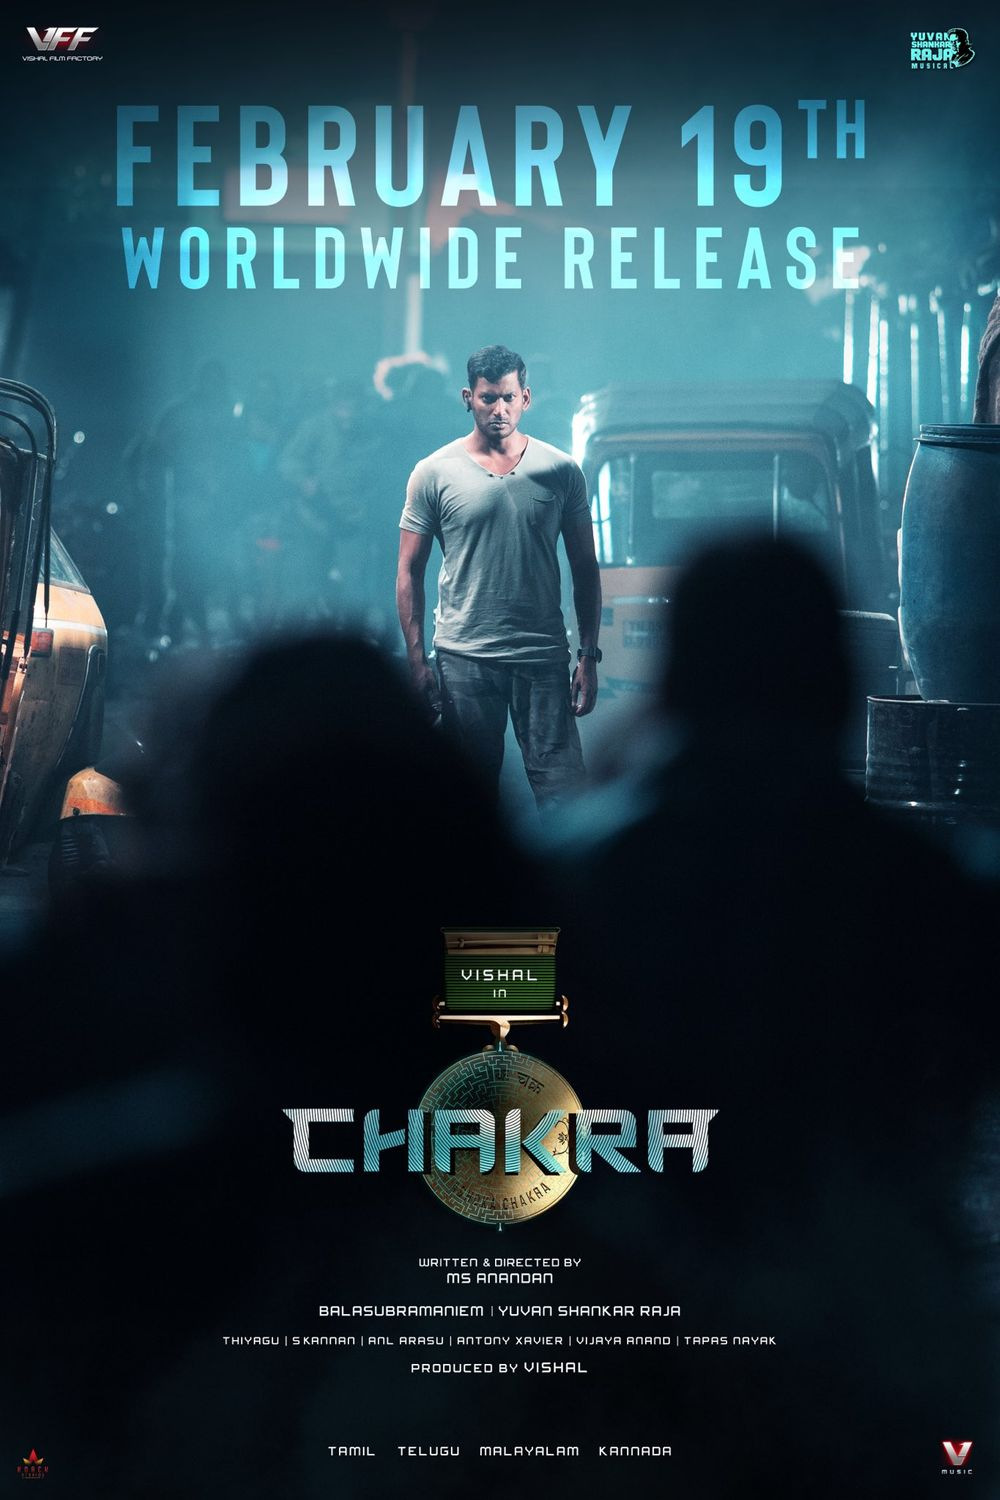 Chakra (2021) Hindi Dubbed Movie PreDVDRip 720p AAC